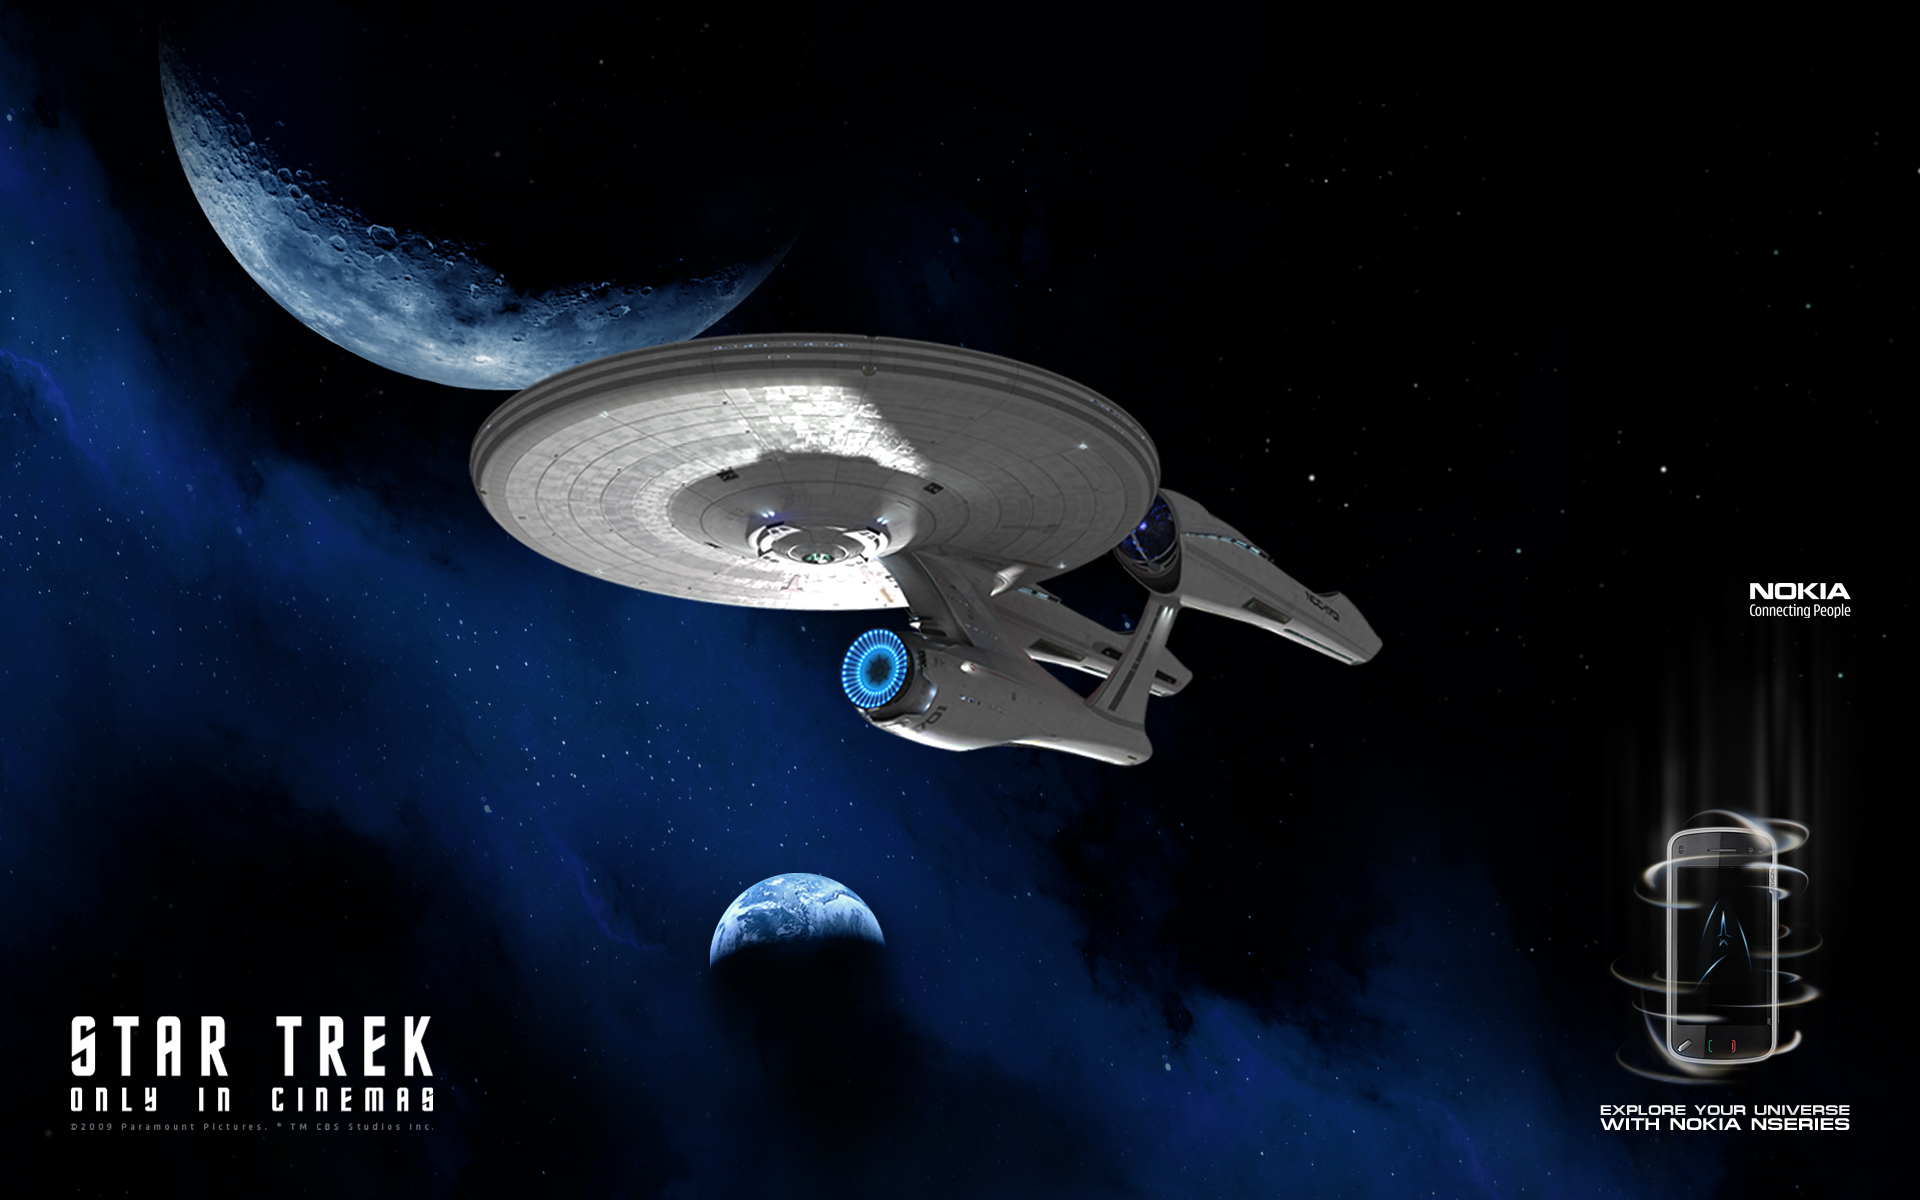 background star trek diventa screensaver mobile nokia 1920x1200